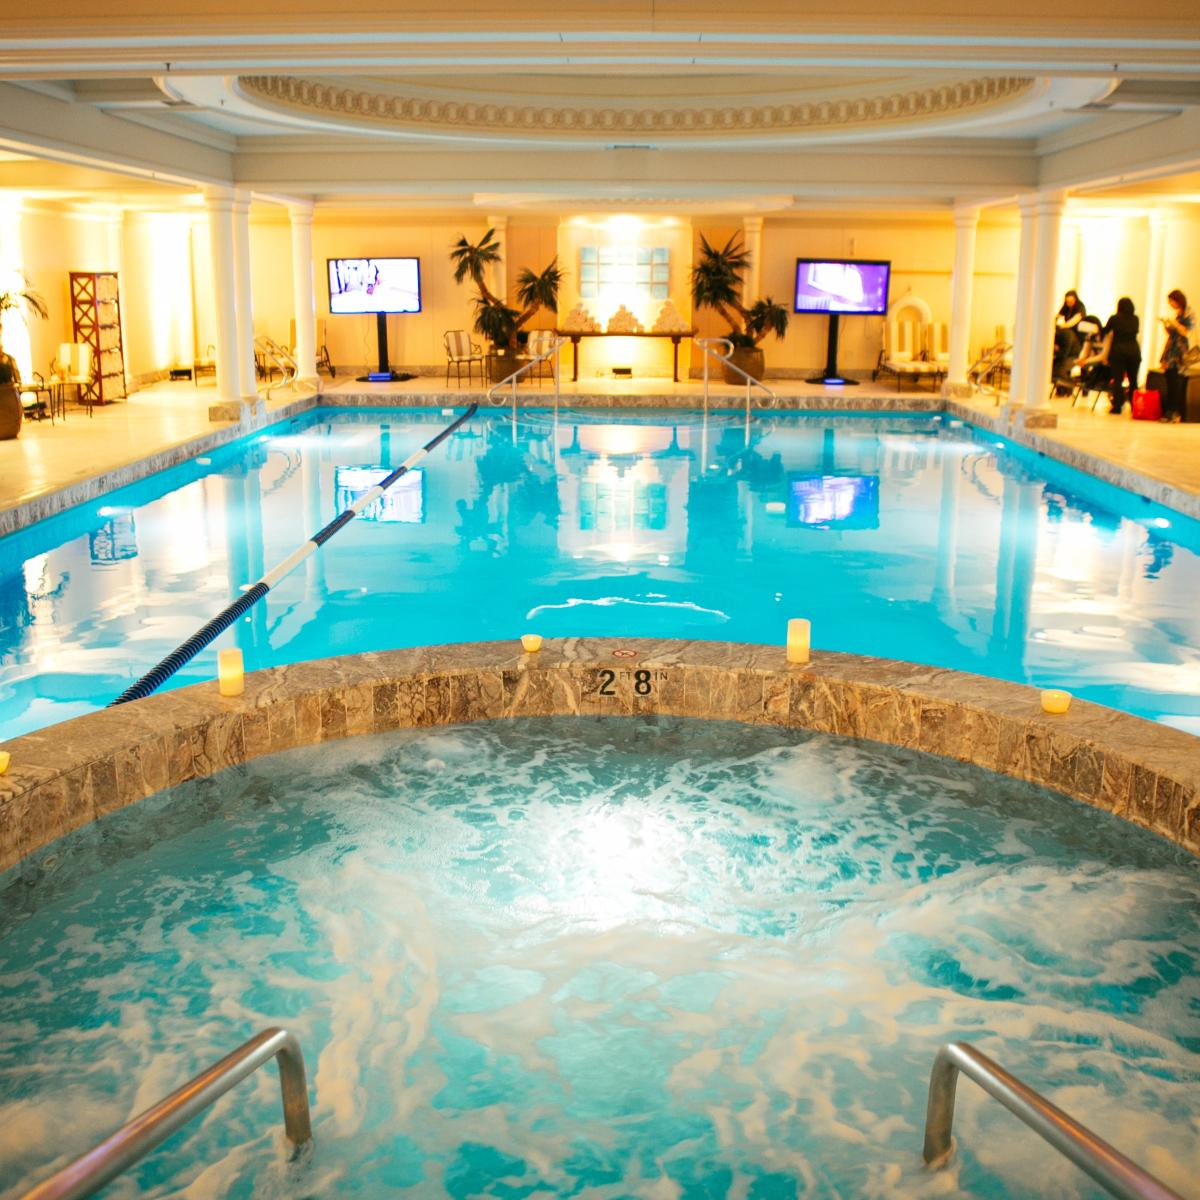 Chicago Hotel With Pools  5 Kidfriendly Hotel Pools